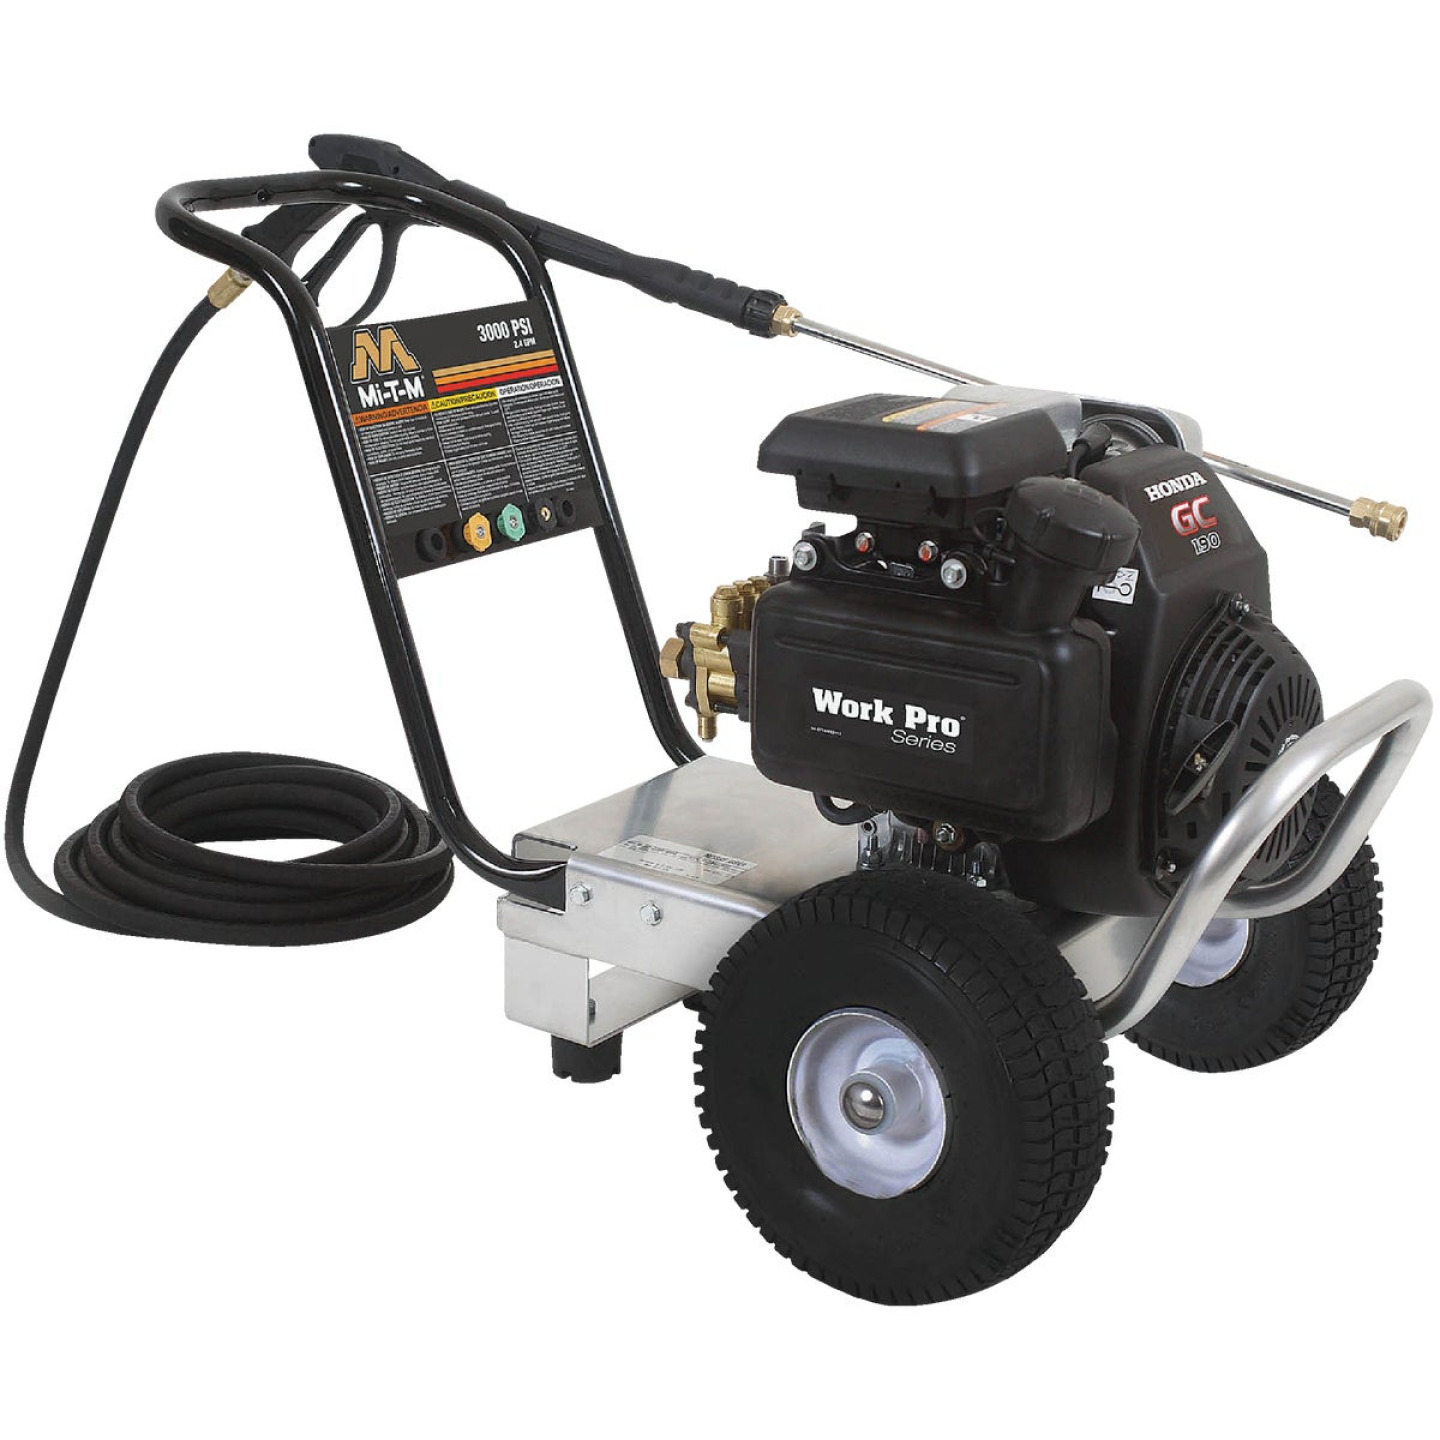 Mi-T-M Work Pro 3000 psi 2.3 GPM Cold Water Gas Pressure Washer Image 1